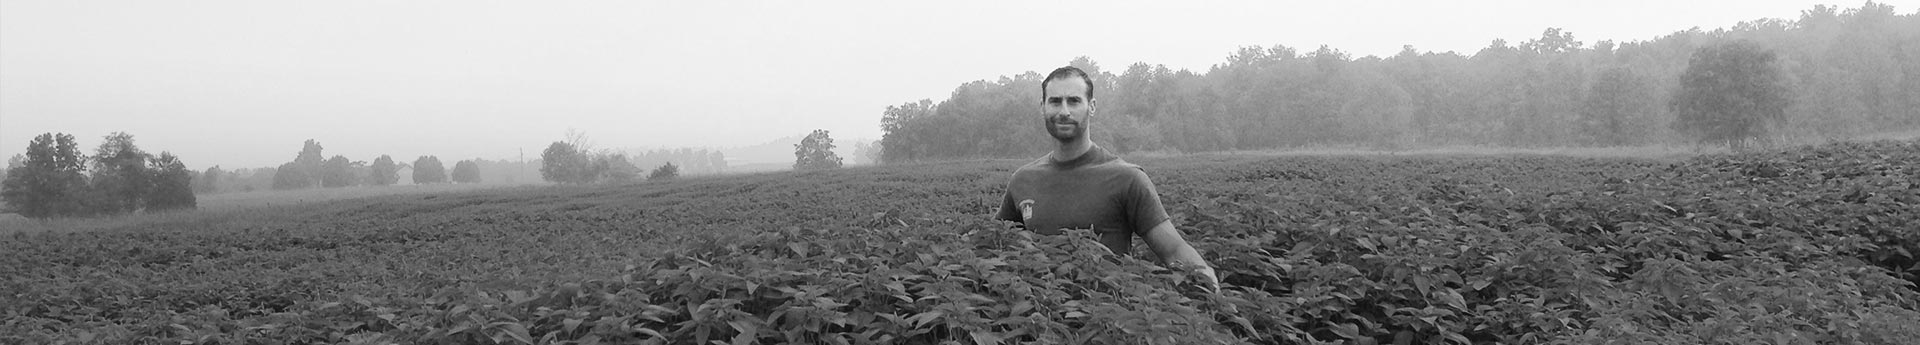 John of Roundstone Native Seed in Upton, Kentucky. Trusted botanical supplier.